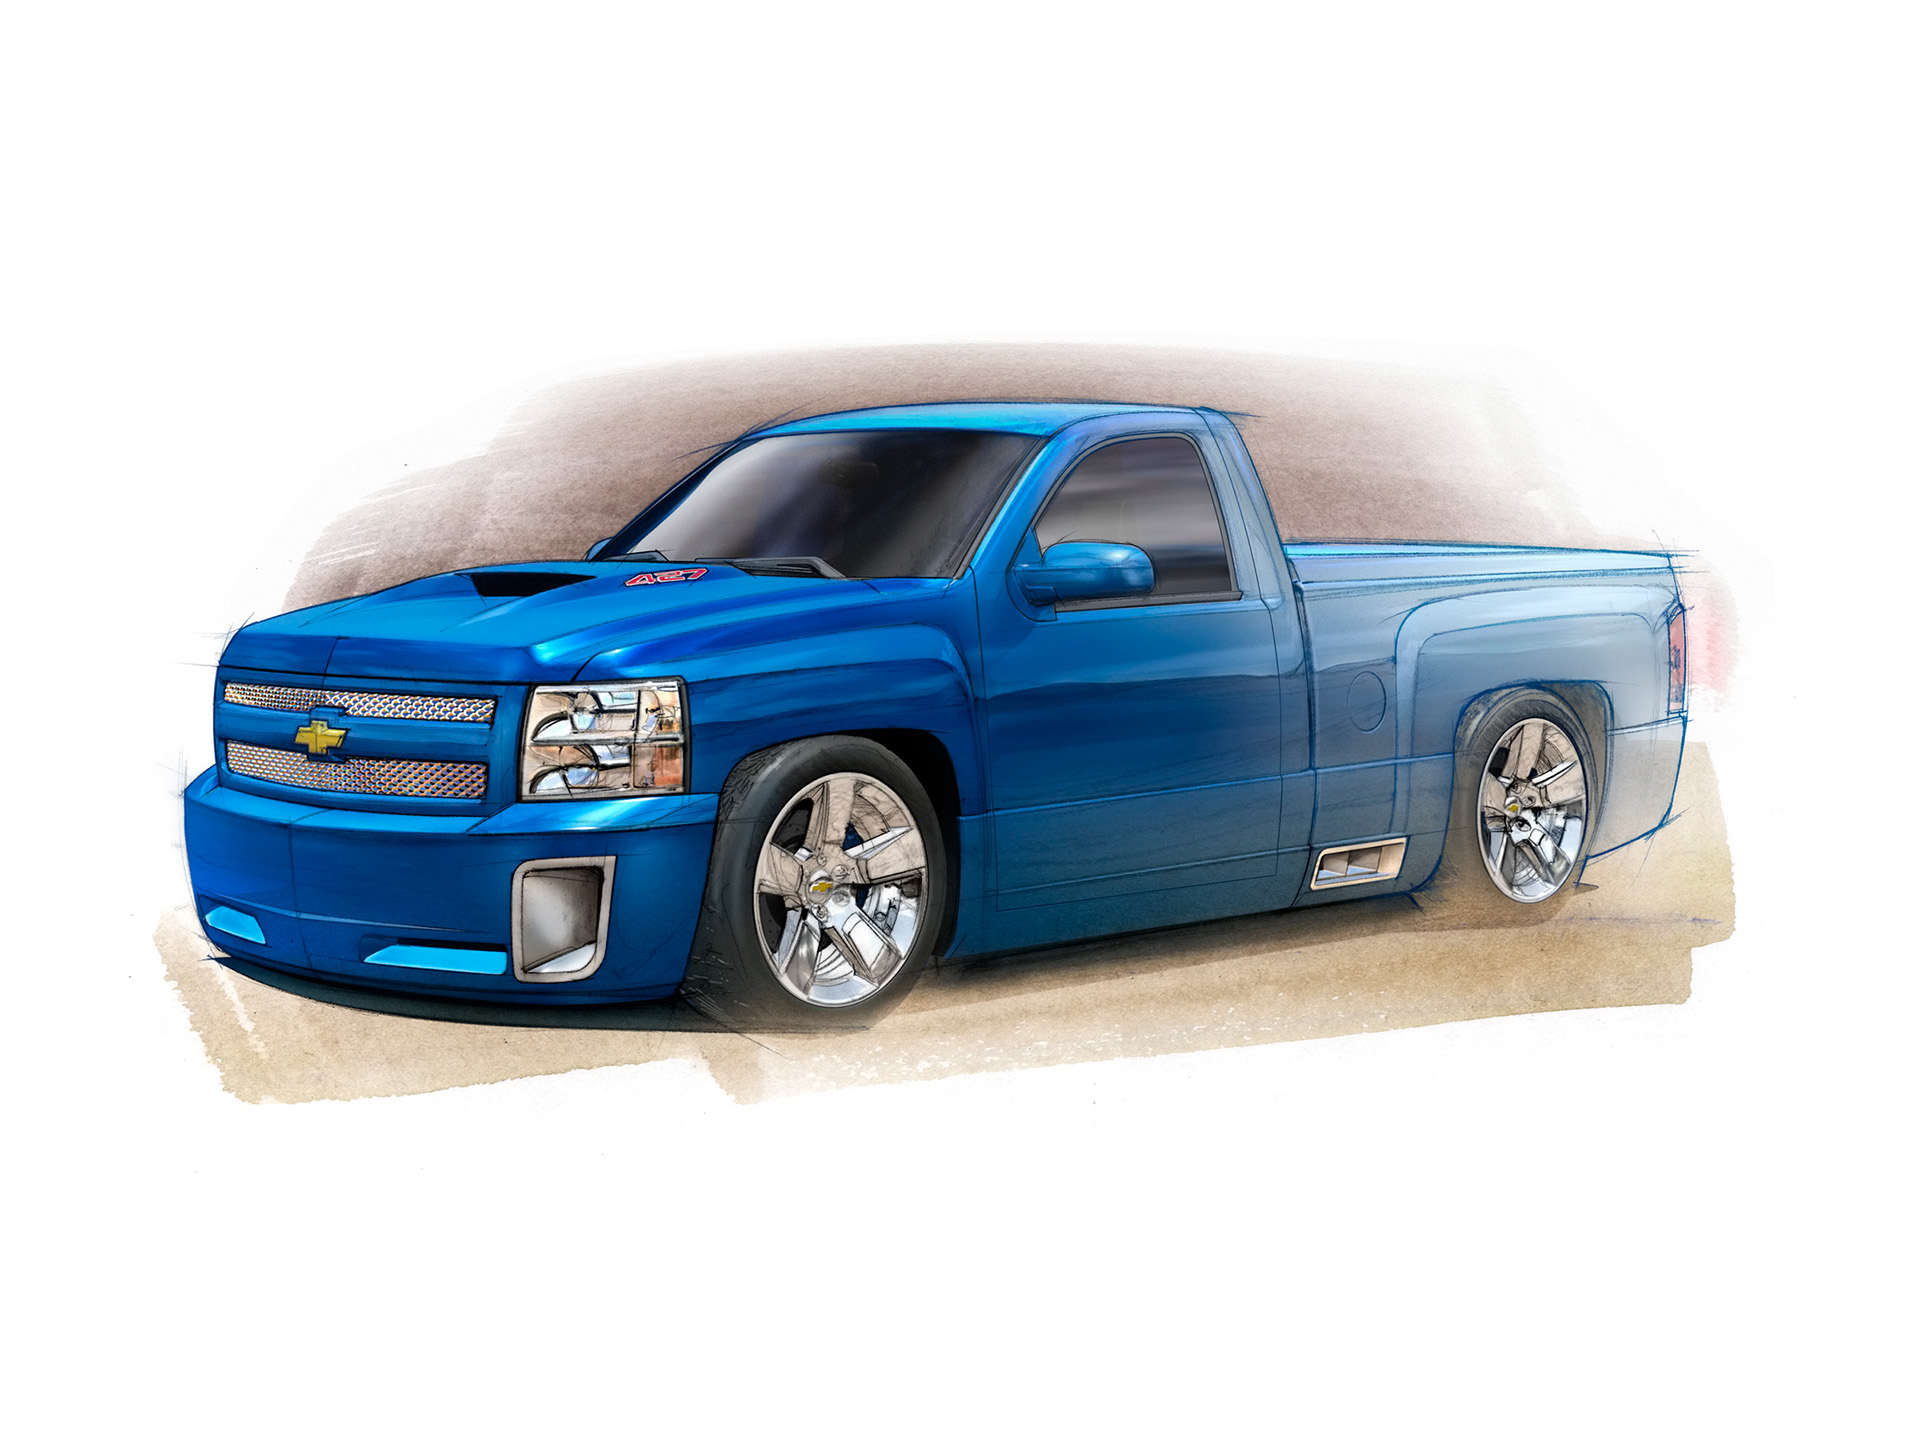 Drawn truck chevy Art on Car images Drawing